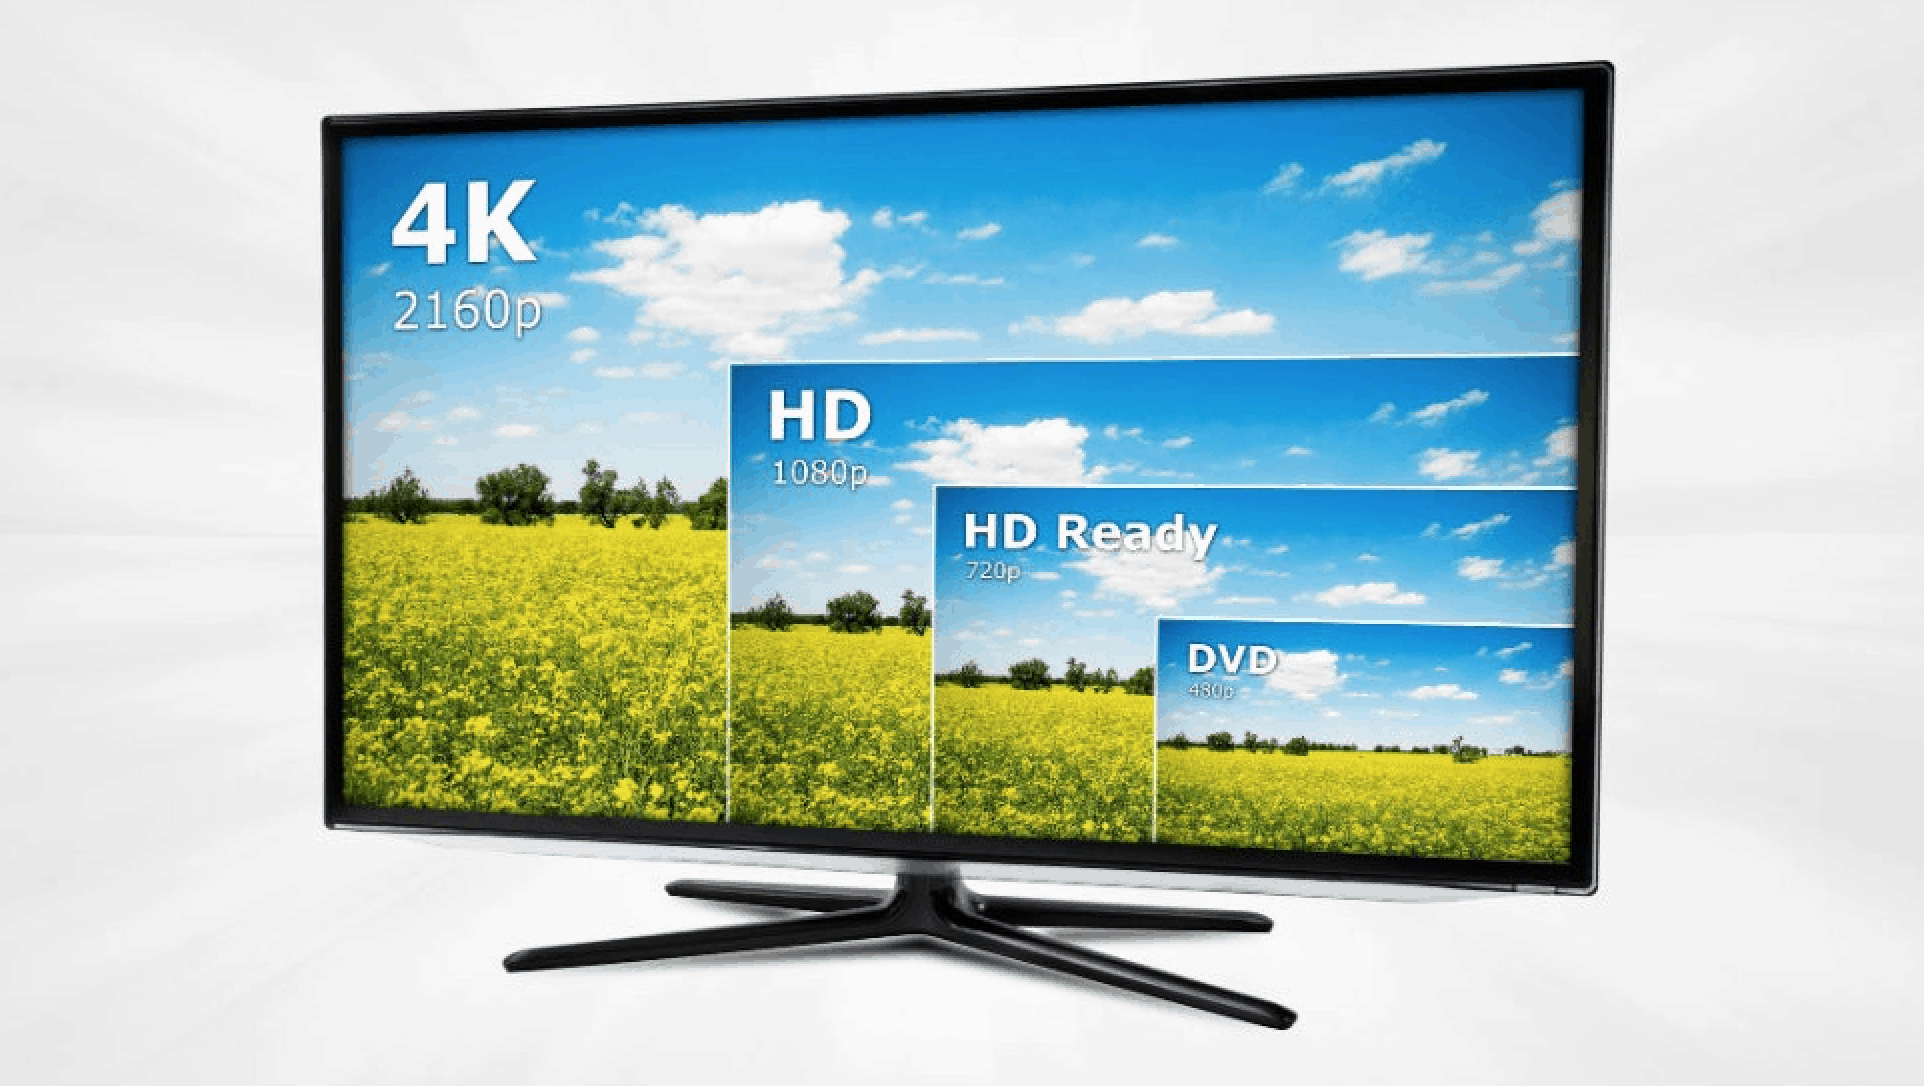 Want to Buy a New TV or Monitor but is 4K Worth it?